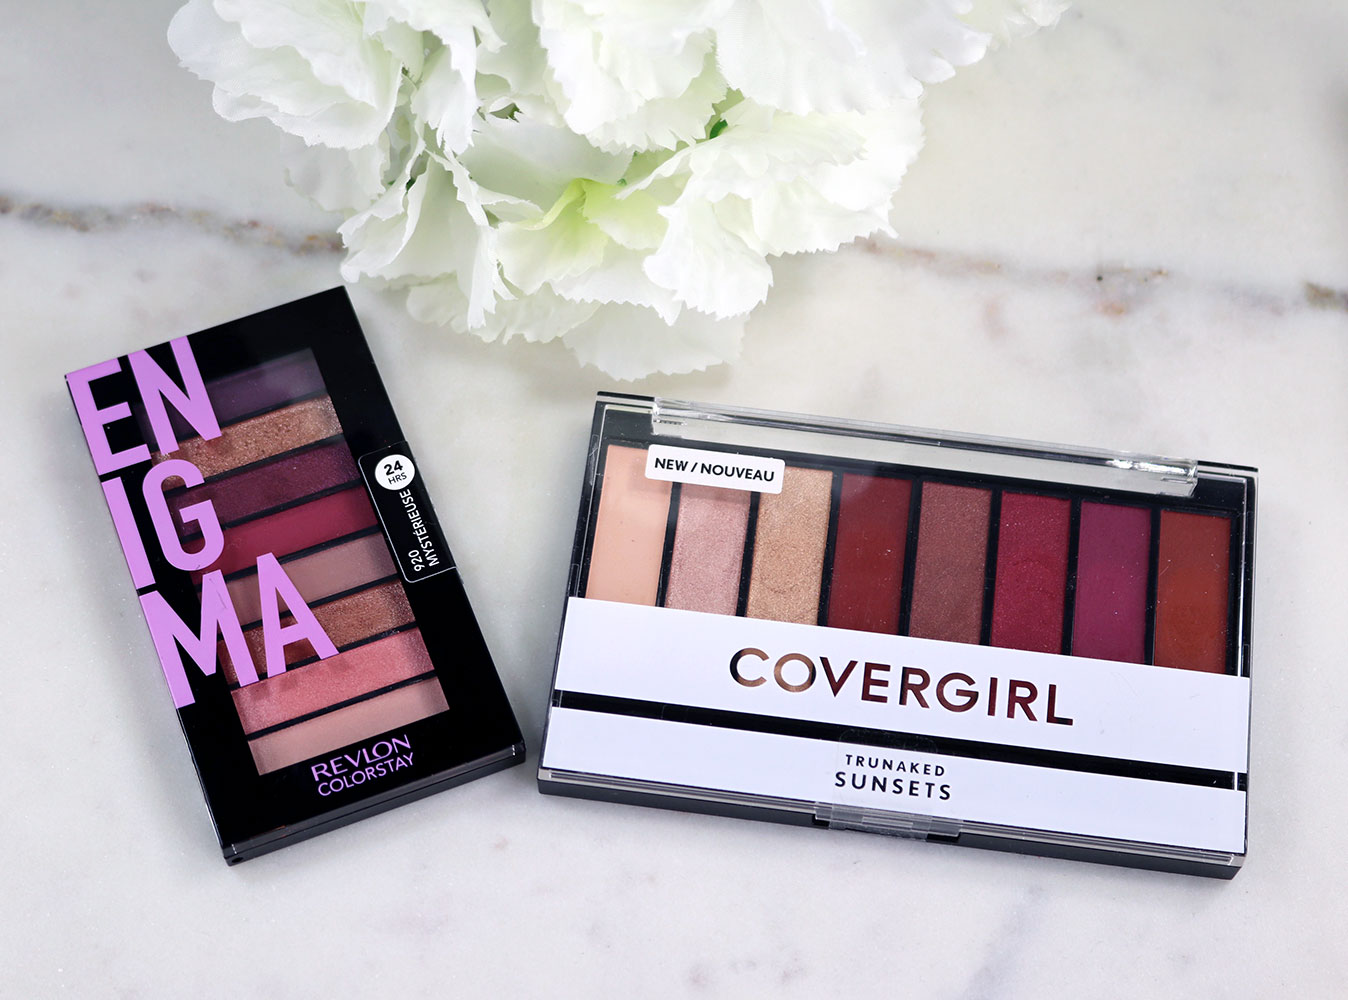 Cruelty free Covergirl dupe for Revlon eyeshadow palette